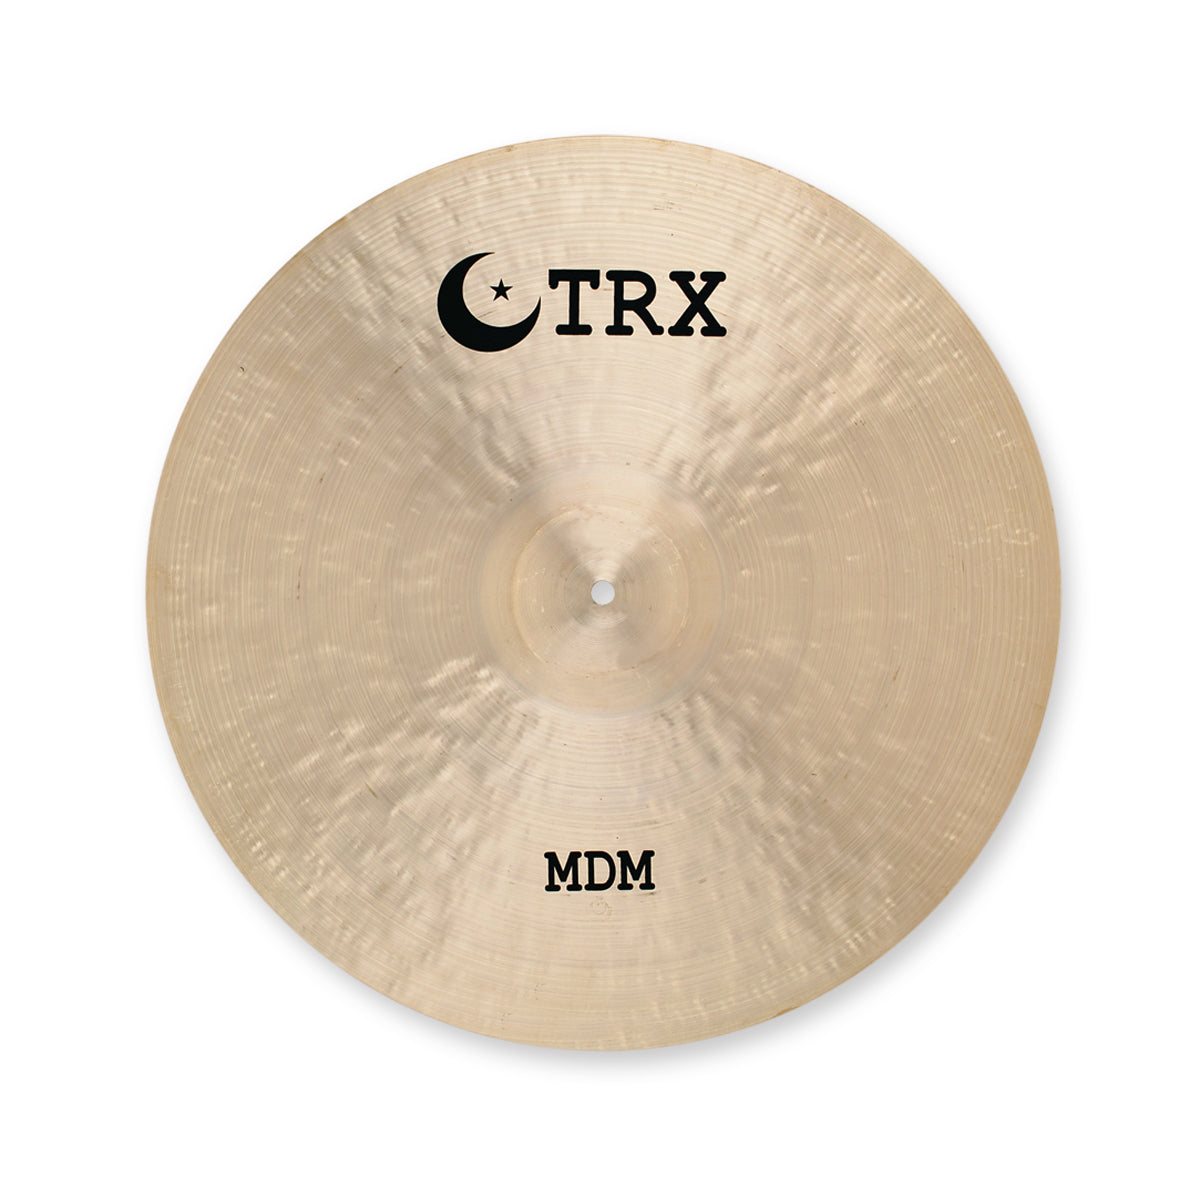 TRX Cymbals MDM Series Crash / Ride